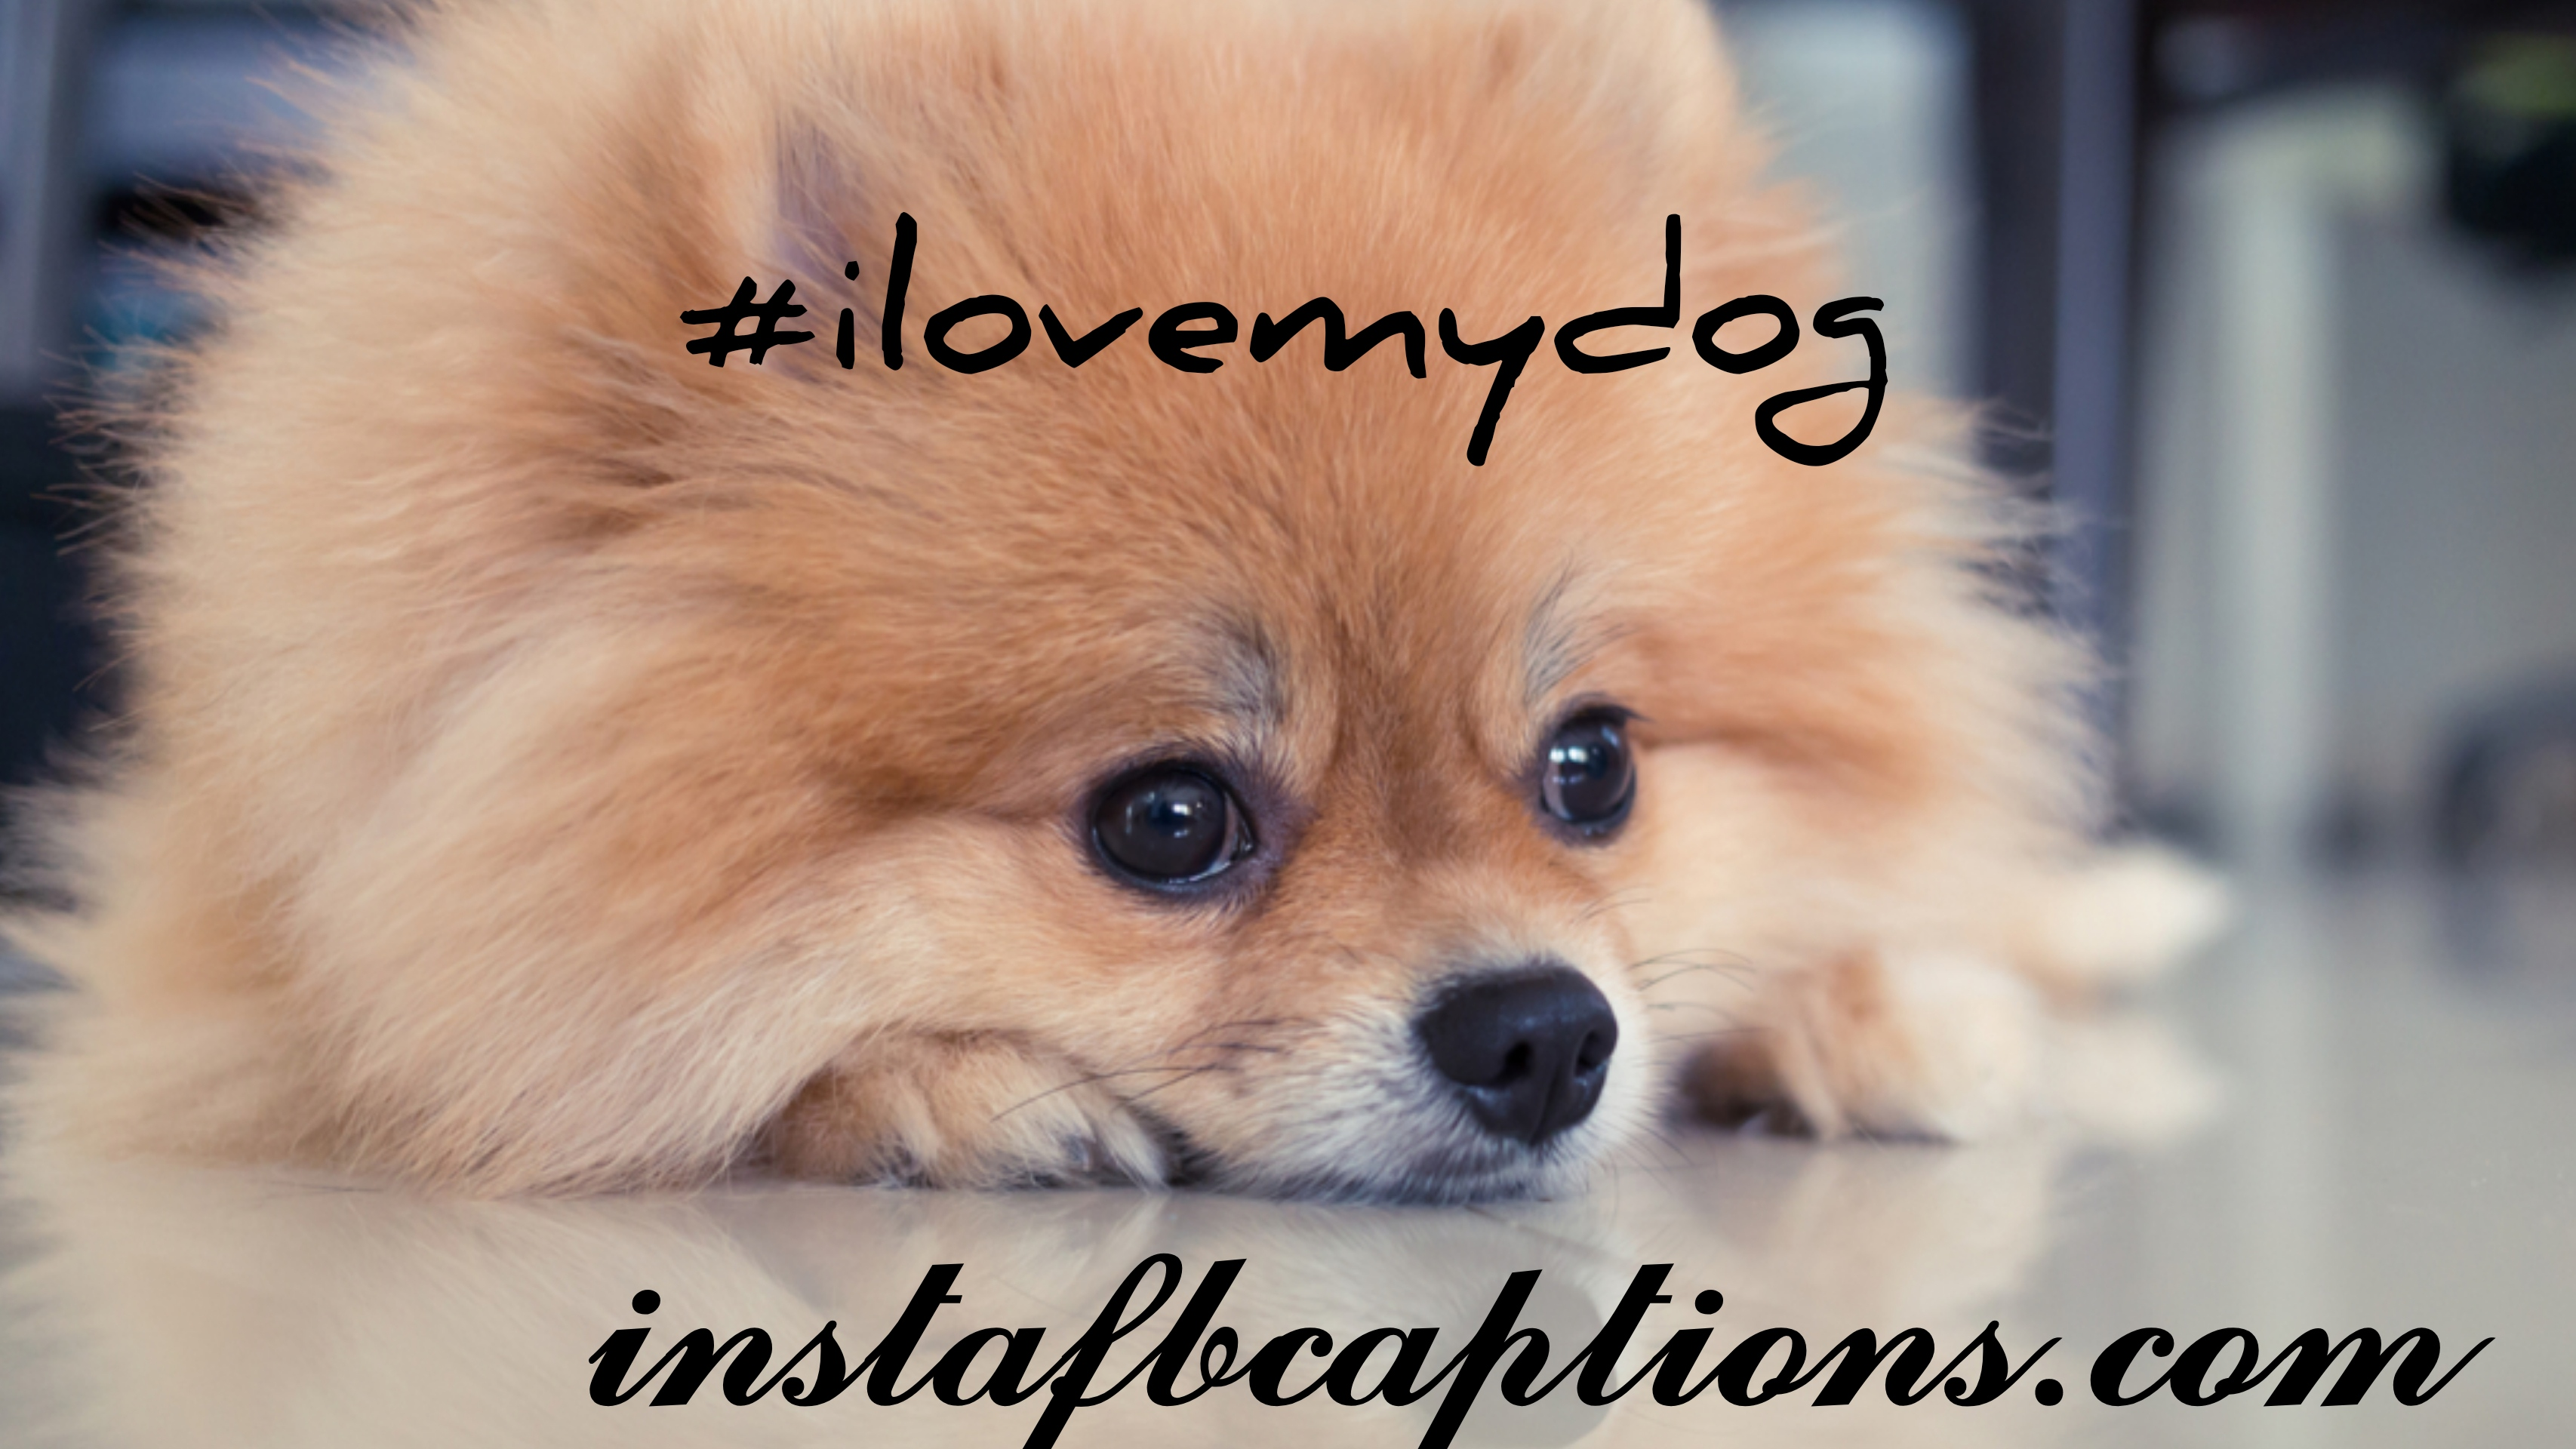 Dog Hashtags  - dog hashtags - 150+ DOGS & PUPPY Instagram Captions for Dog Lovers 2021